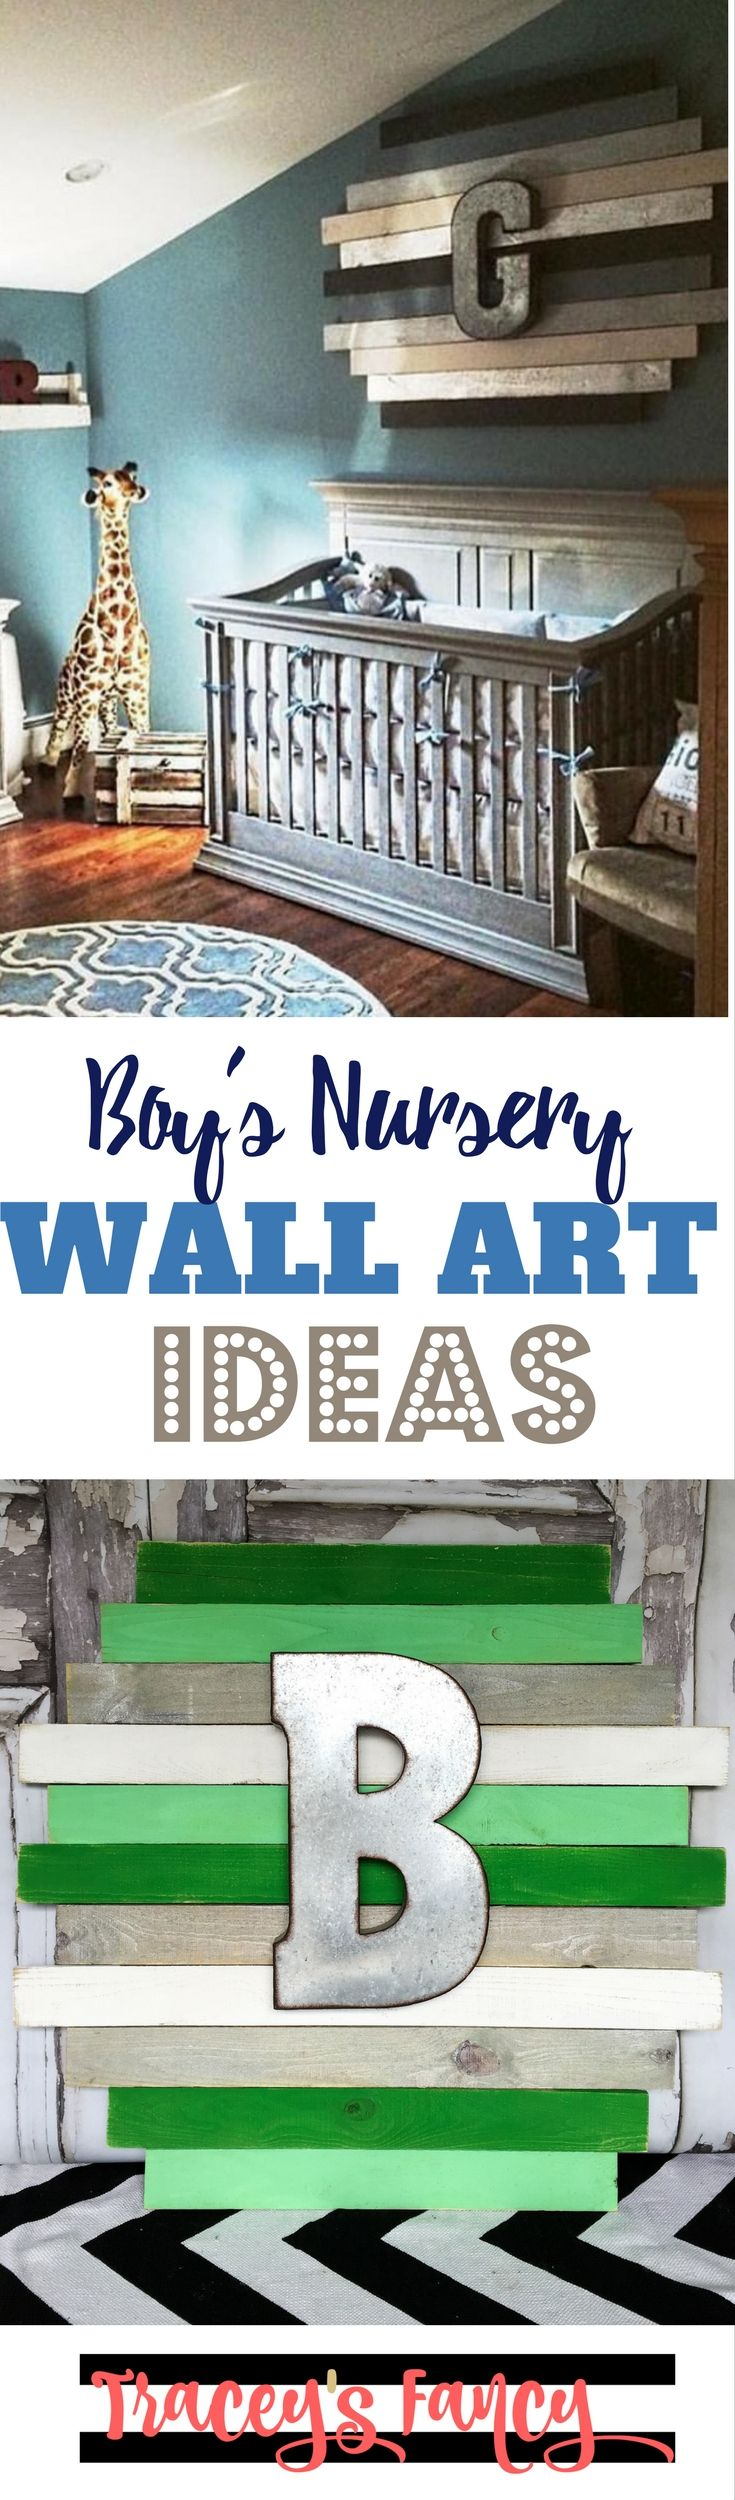 Wonderful Wall Art Ideas for a Boys Nursery | Tracey's Fancy | Painted Nursery Decor for boys